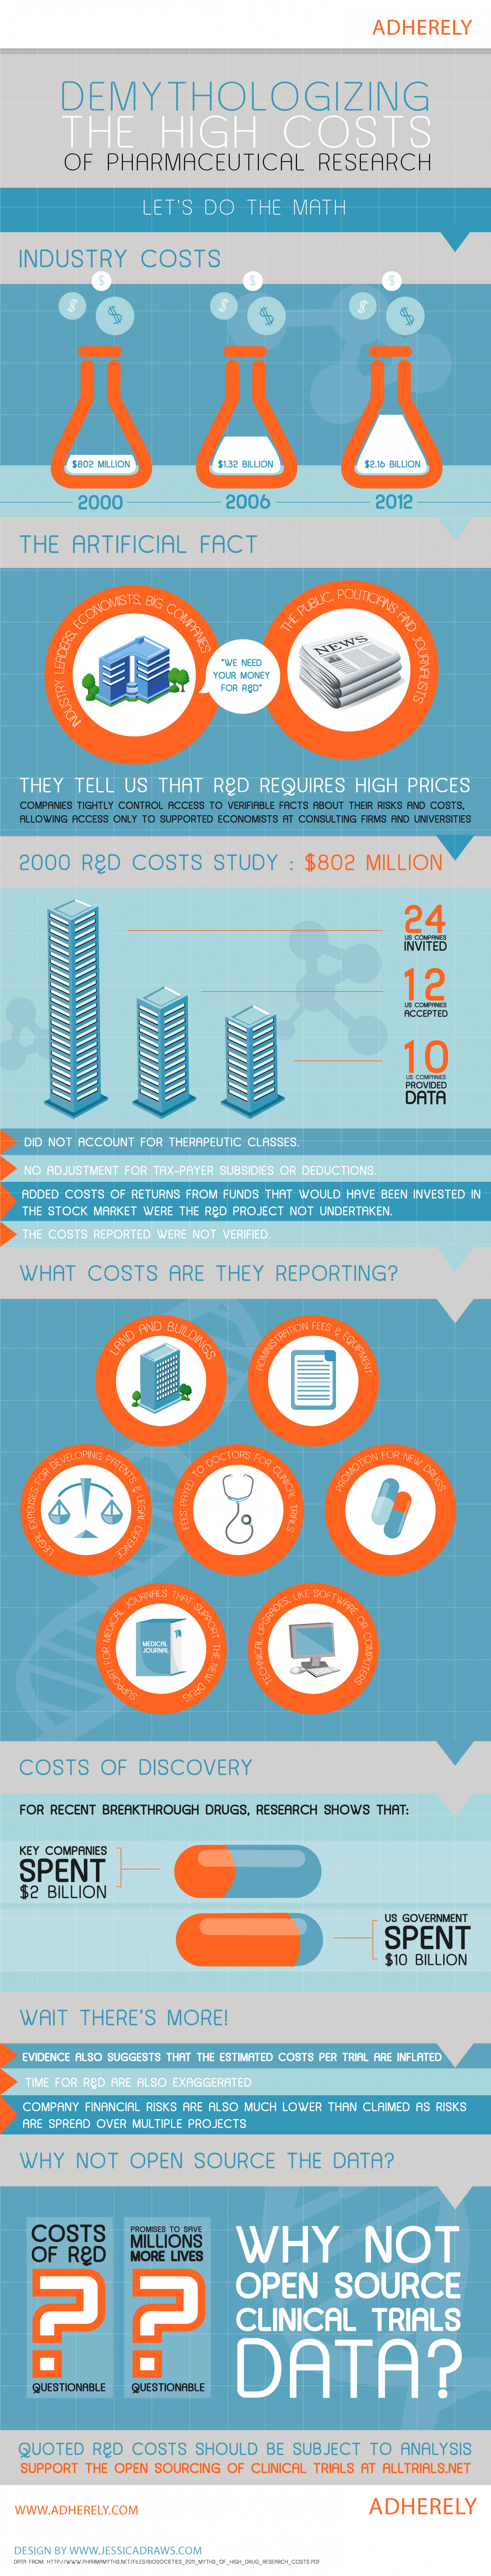 Demythologizing The High Costs Of Pharmaceutical Research Infographic